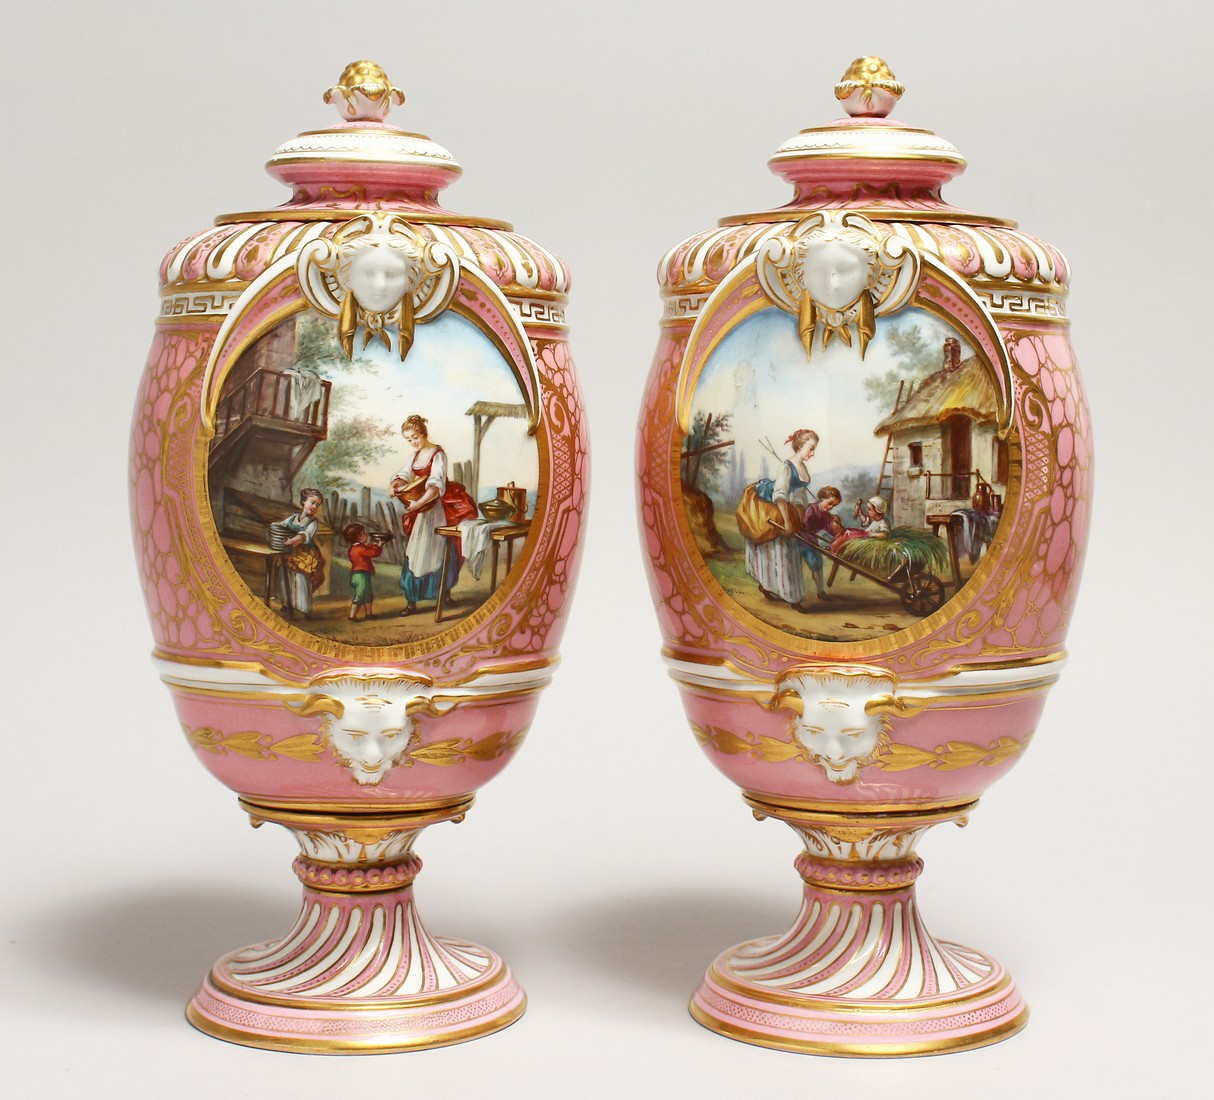 A VERY GOOD PAIR OF SEVRES PINK GROUND VASES AND COVERS each painted with reverse panels of figures,